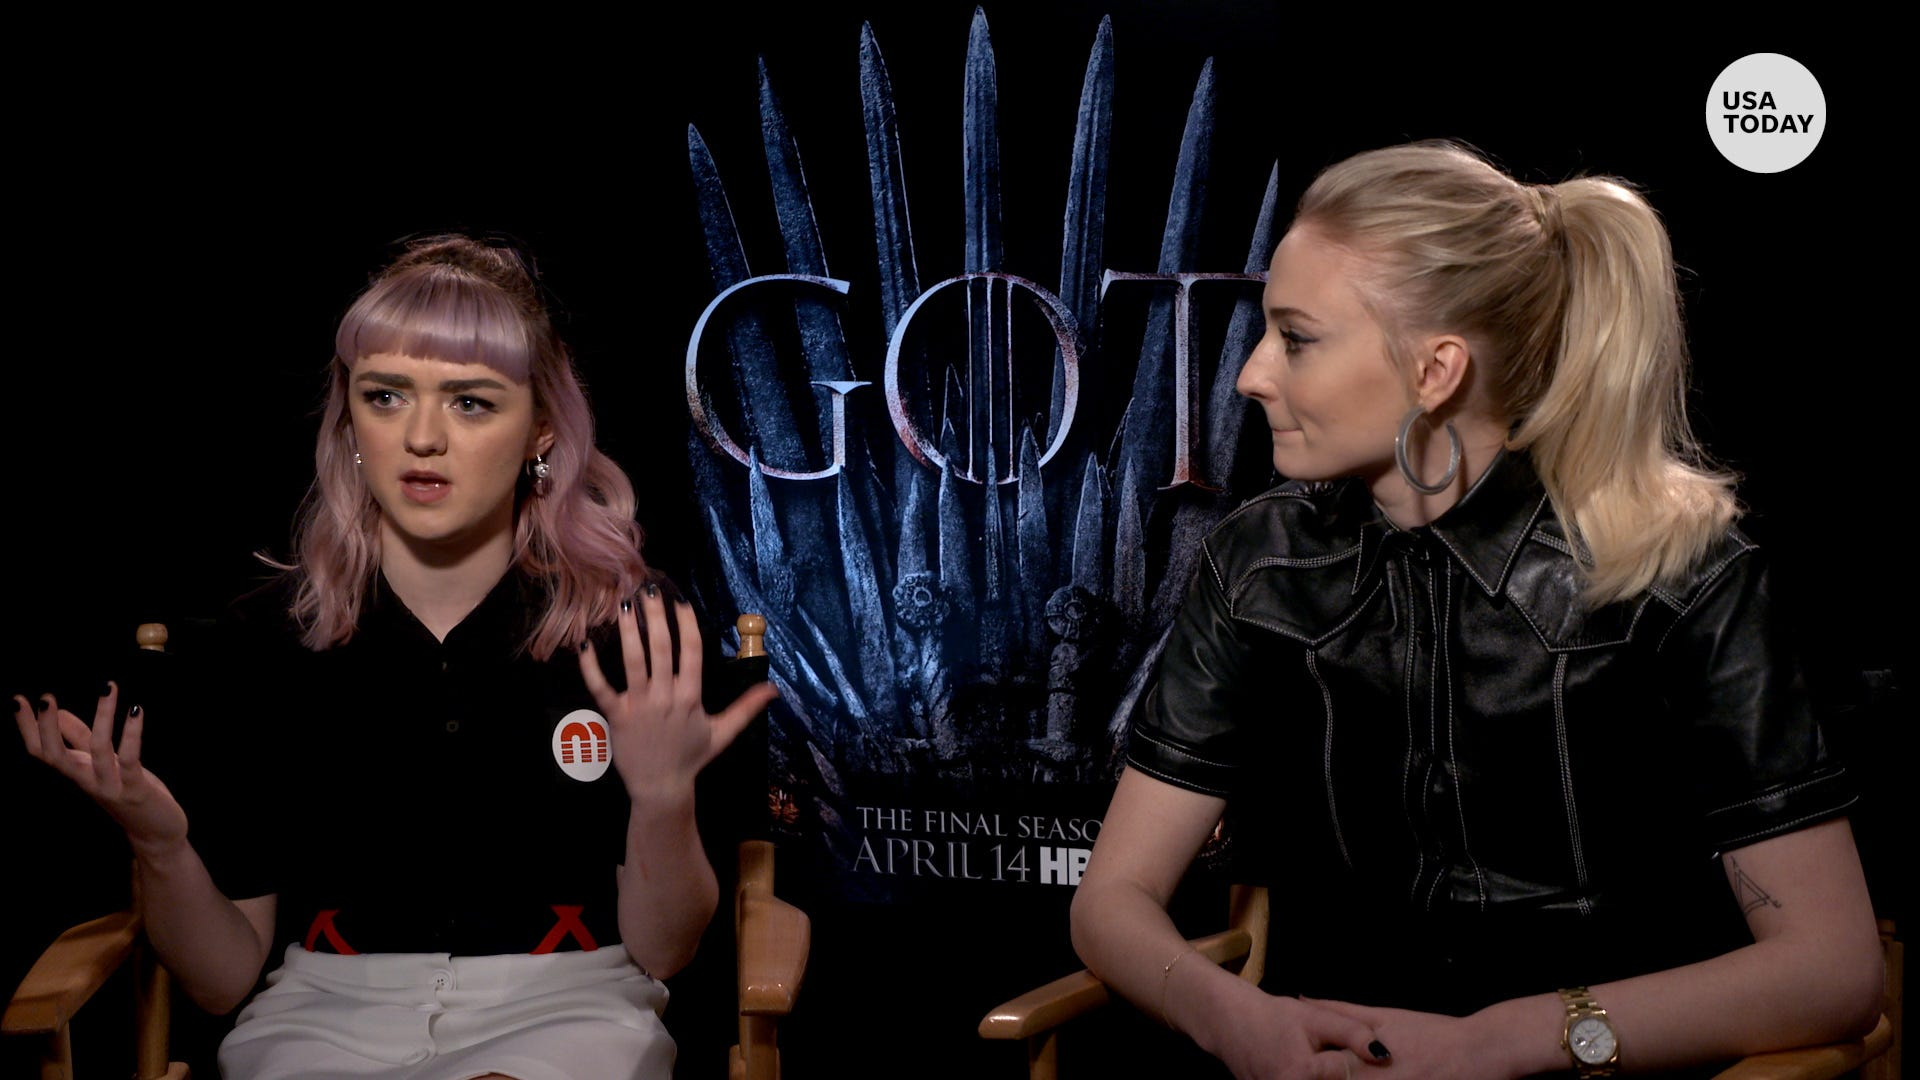 'Game of Thrones' stars reveal what they say when asked about spoilers